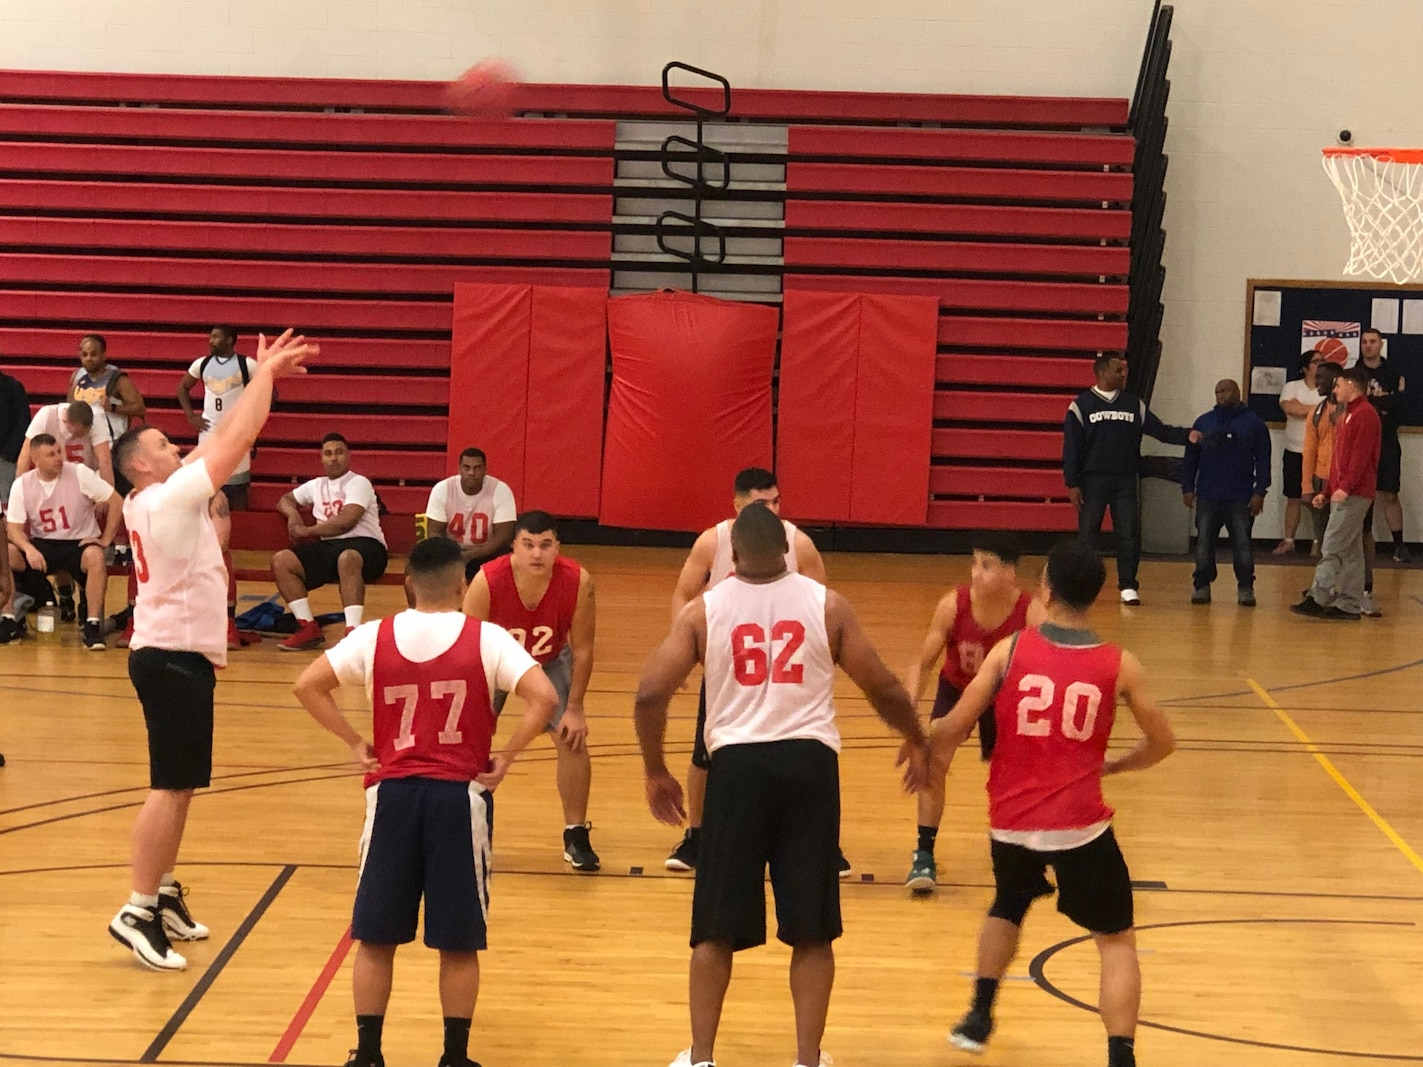 Security and Emergency services are the primary mission to Security Battalion, but also are active participants in MCB Quantico intramural Sports. Shown here is SecBn at the line shooting free throws.